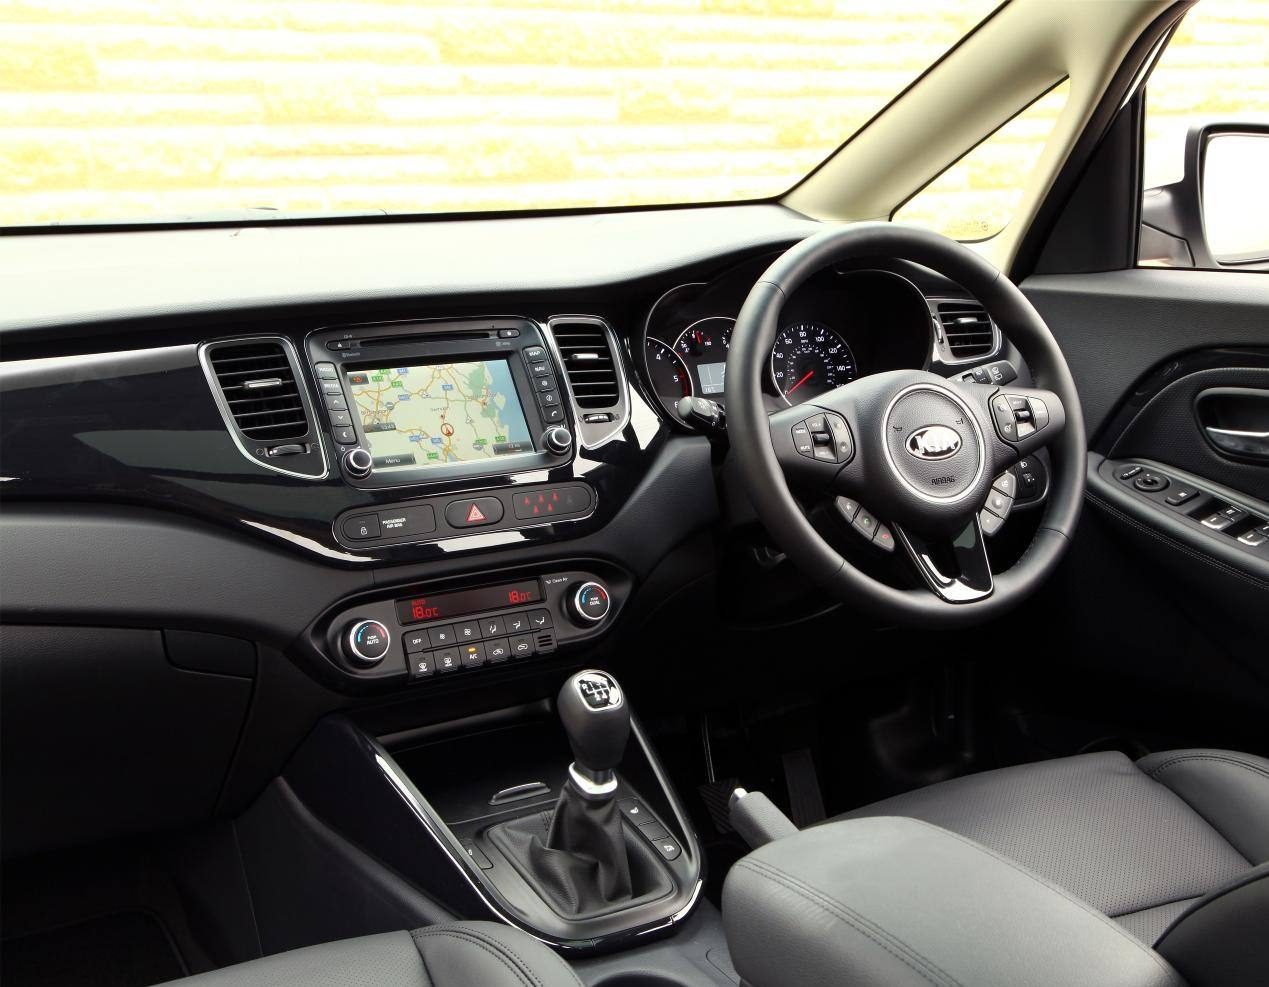 image of a car interior